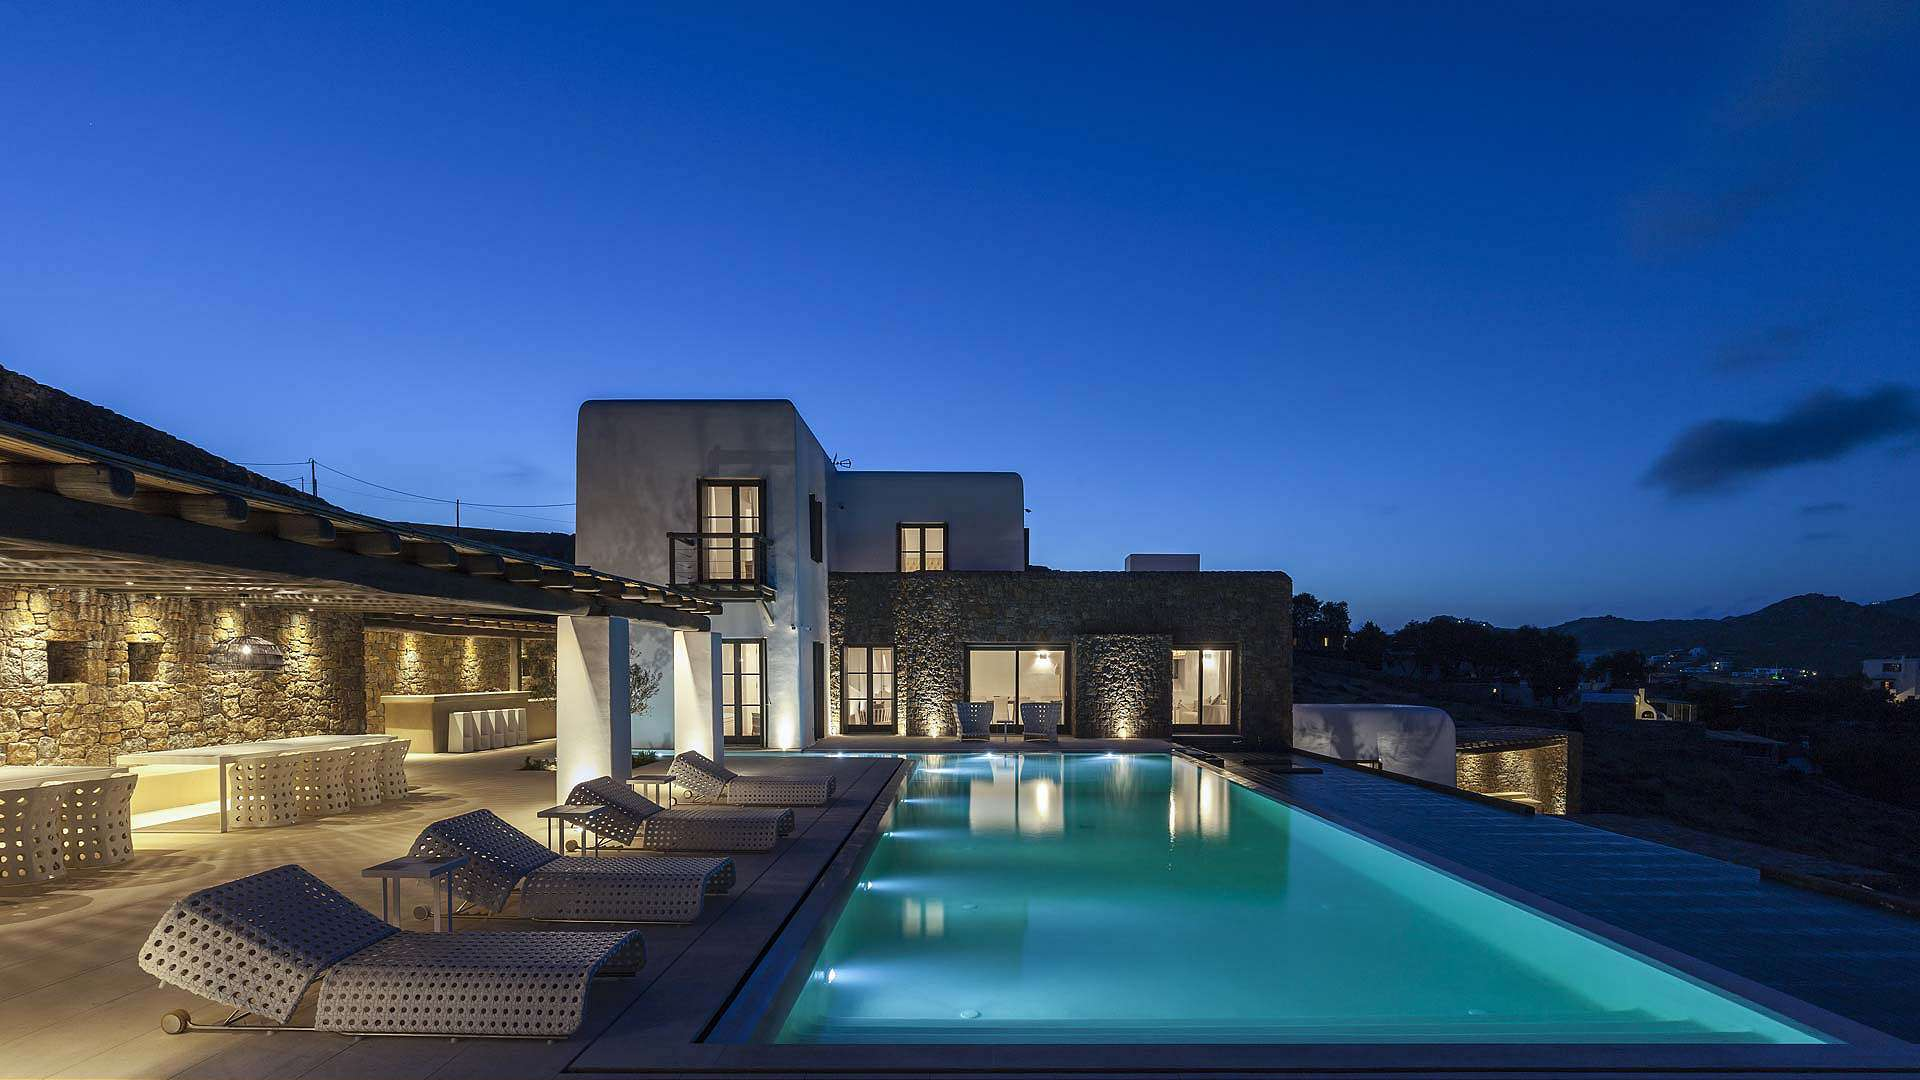 Villa for Rent in Mykonos - All Luxury Apartments